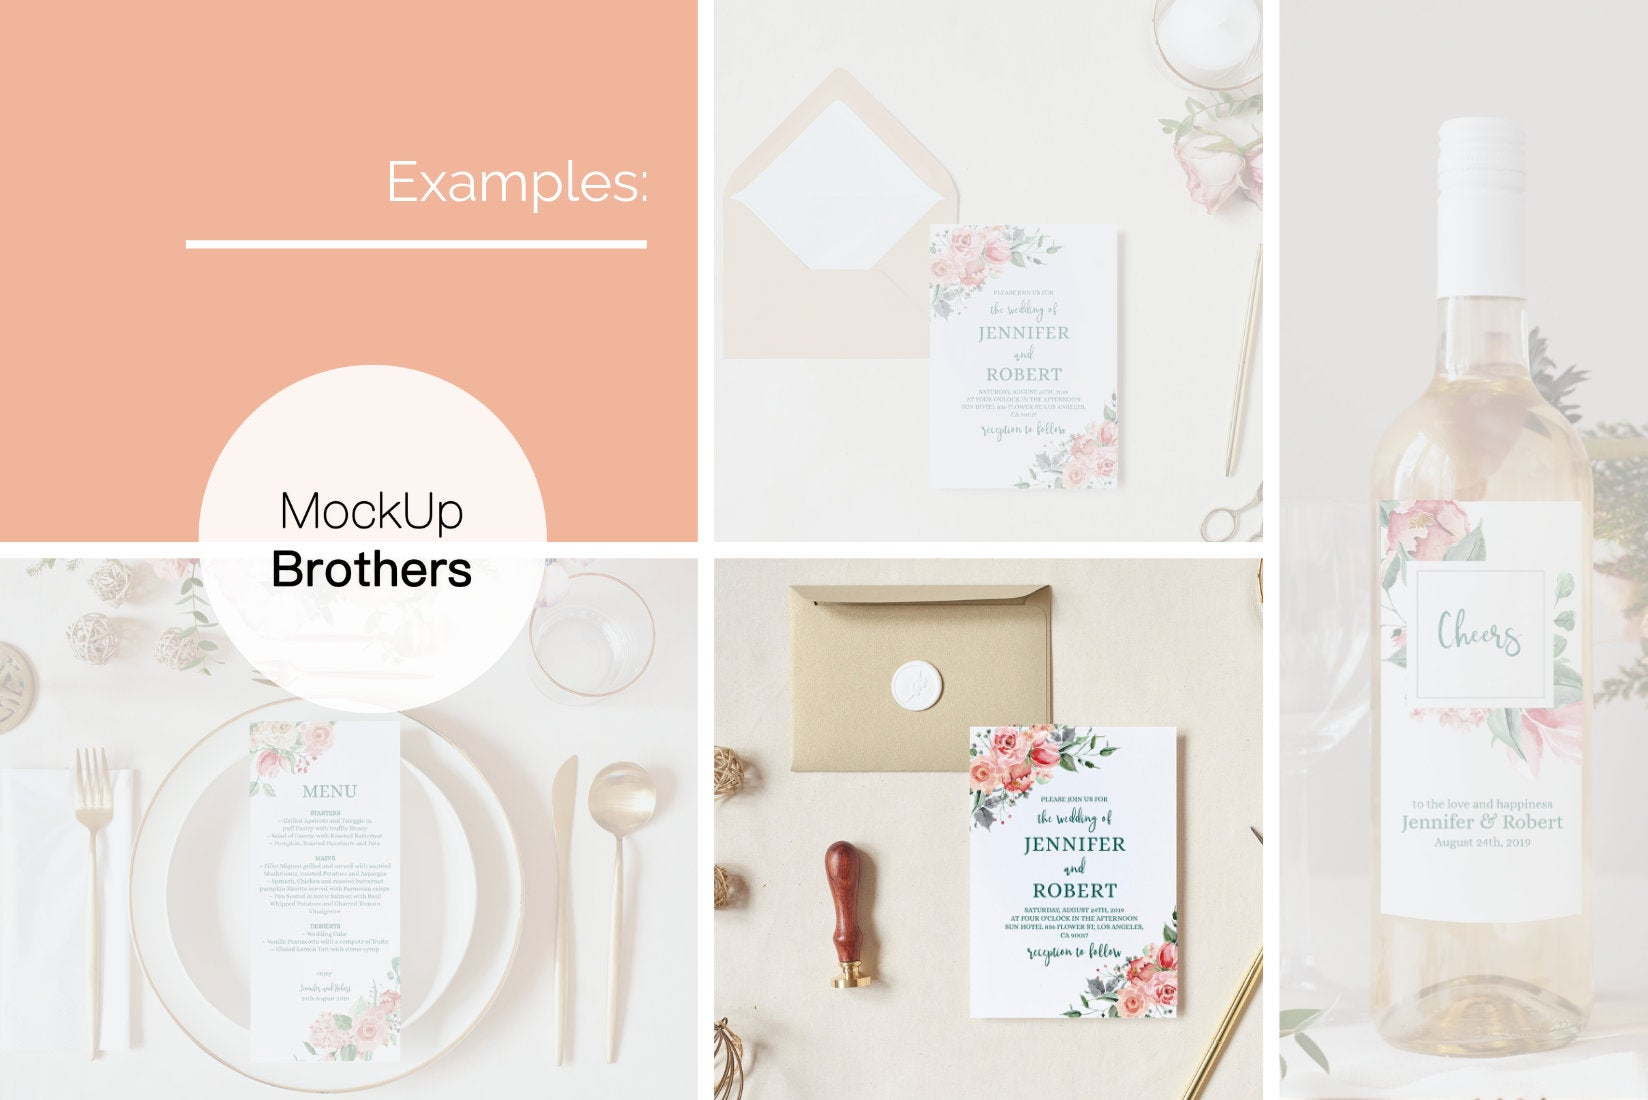 Wedding invitation mockup W01_13